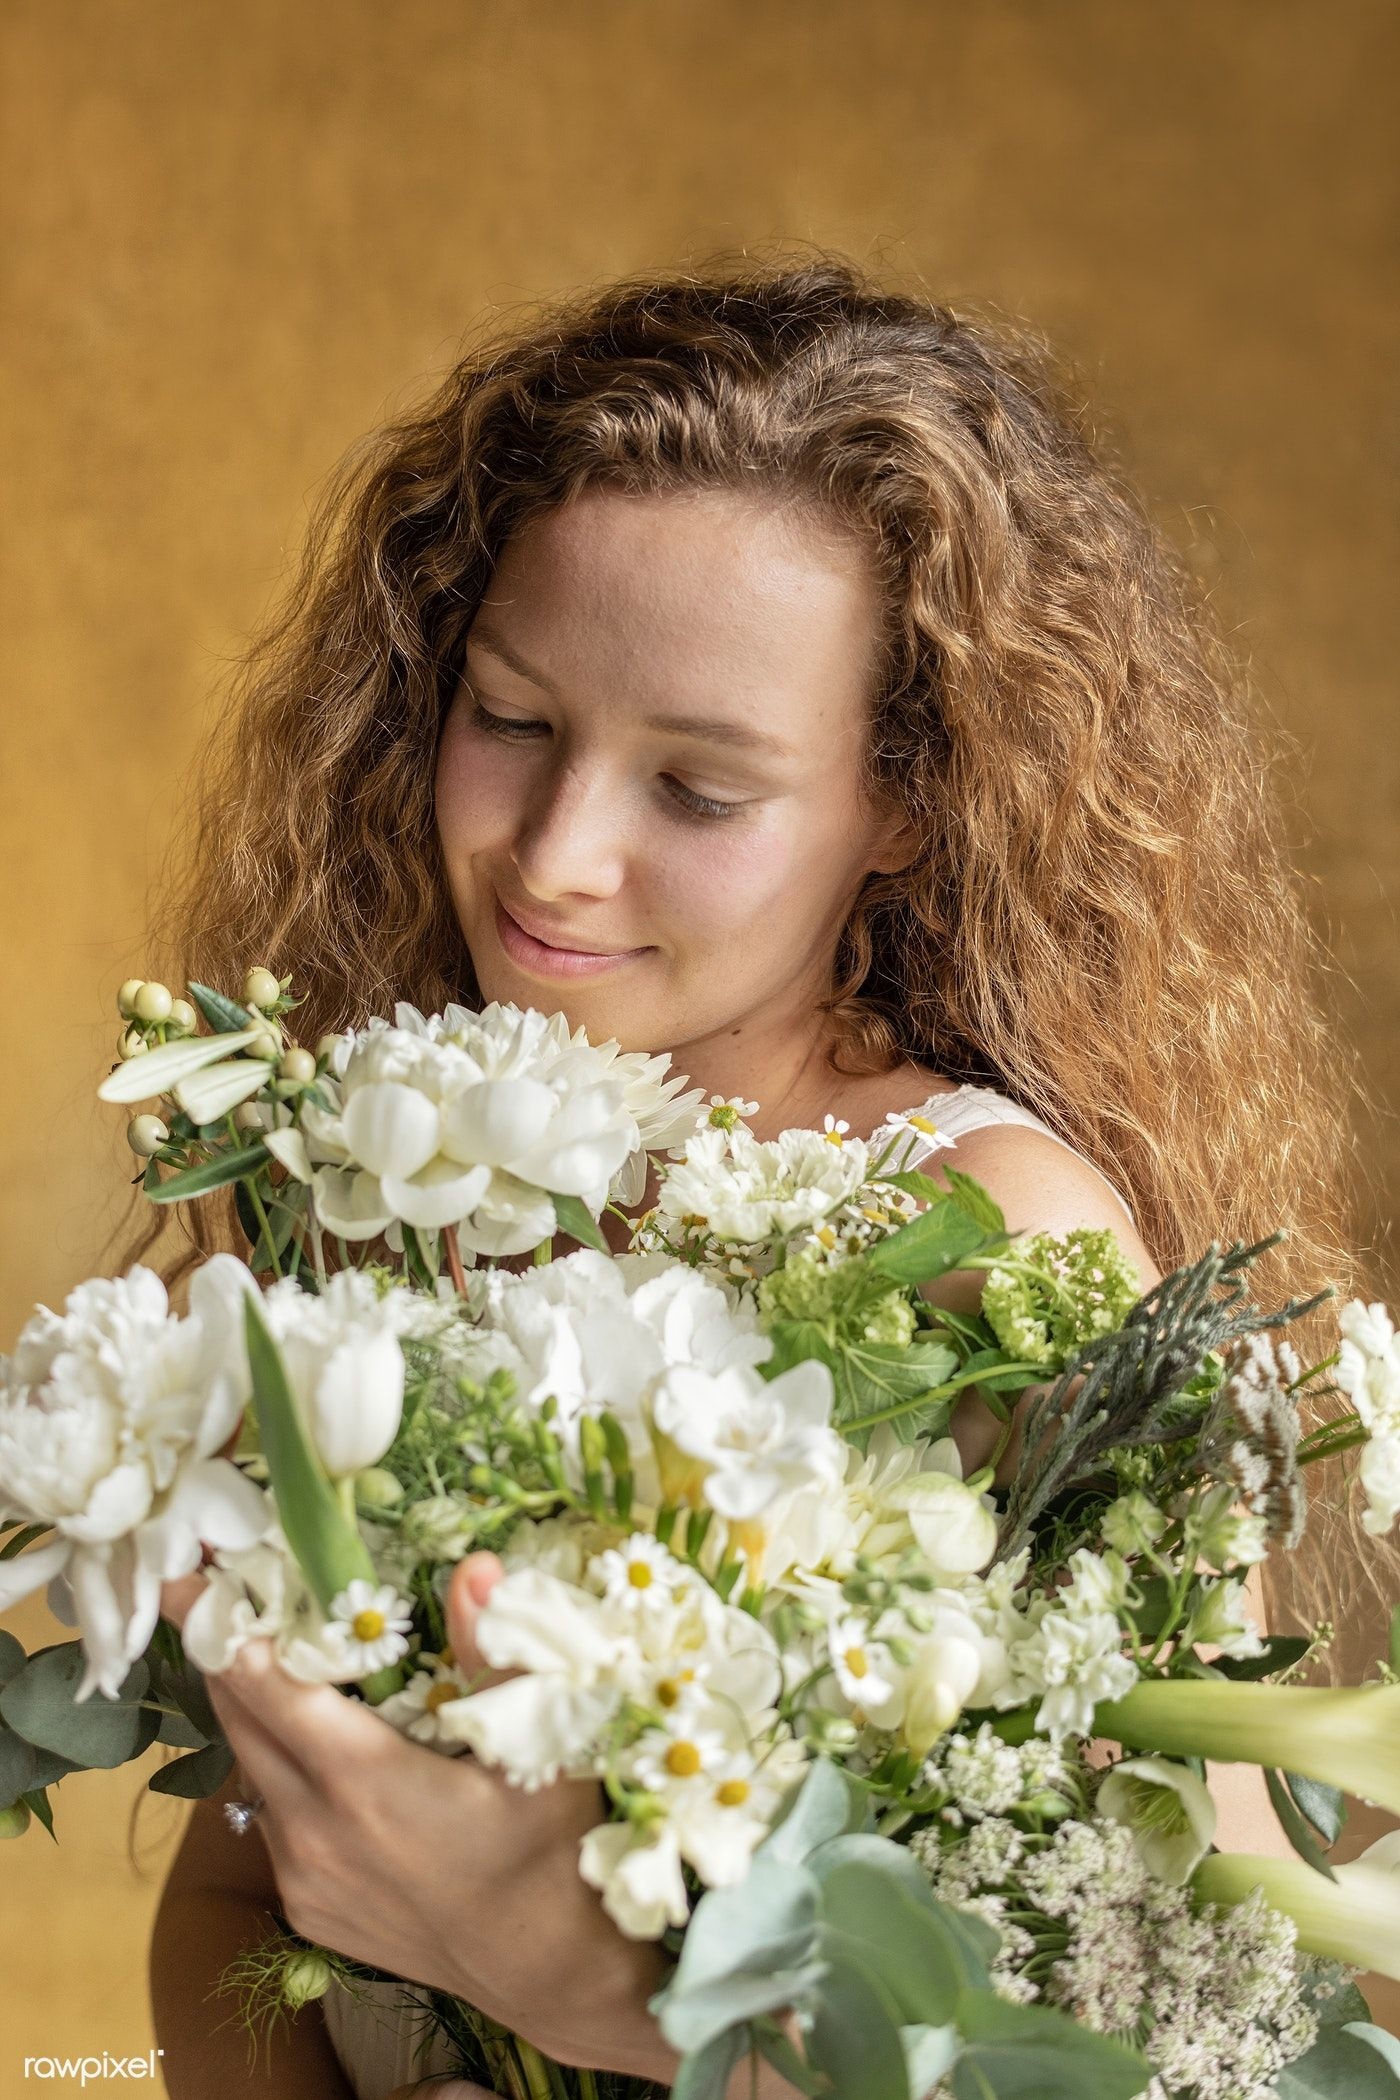 Download premium photo of Woman holding a bouquet of white